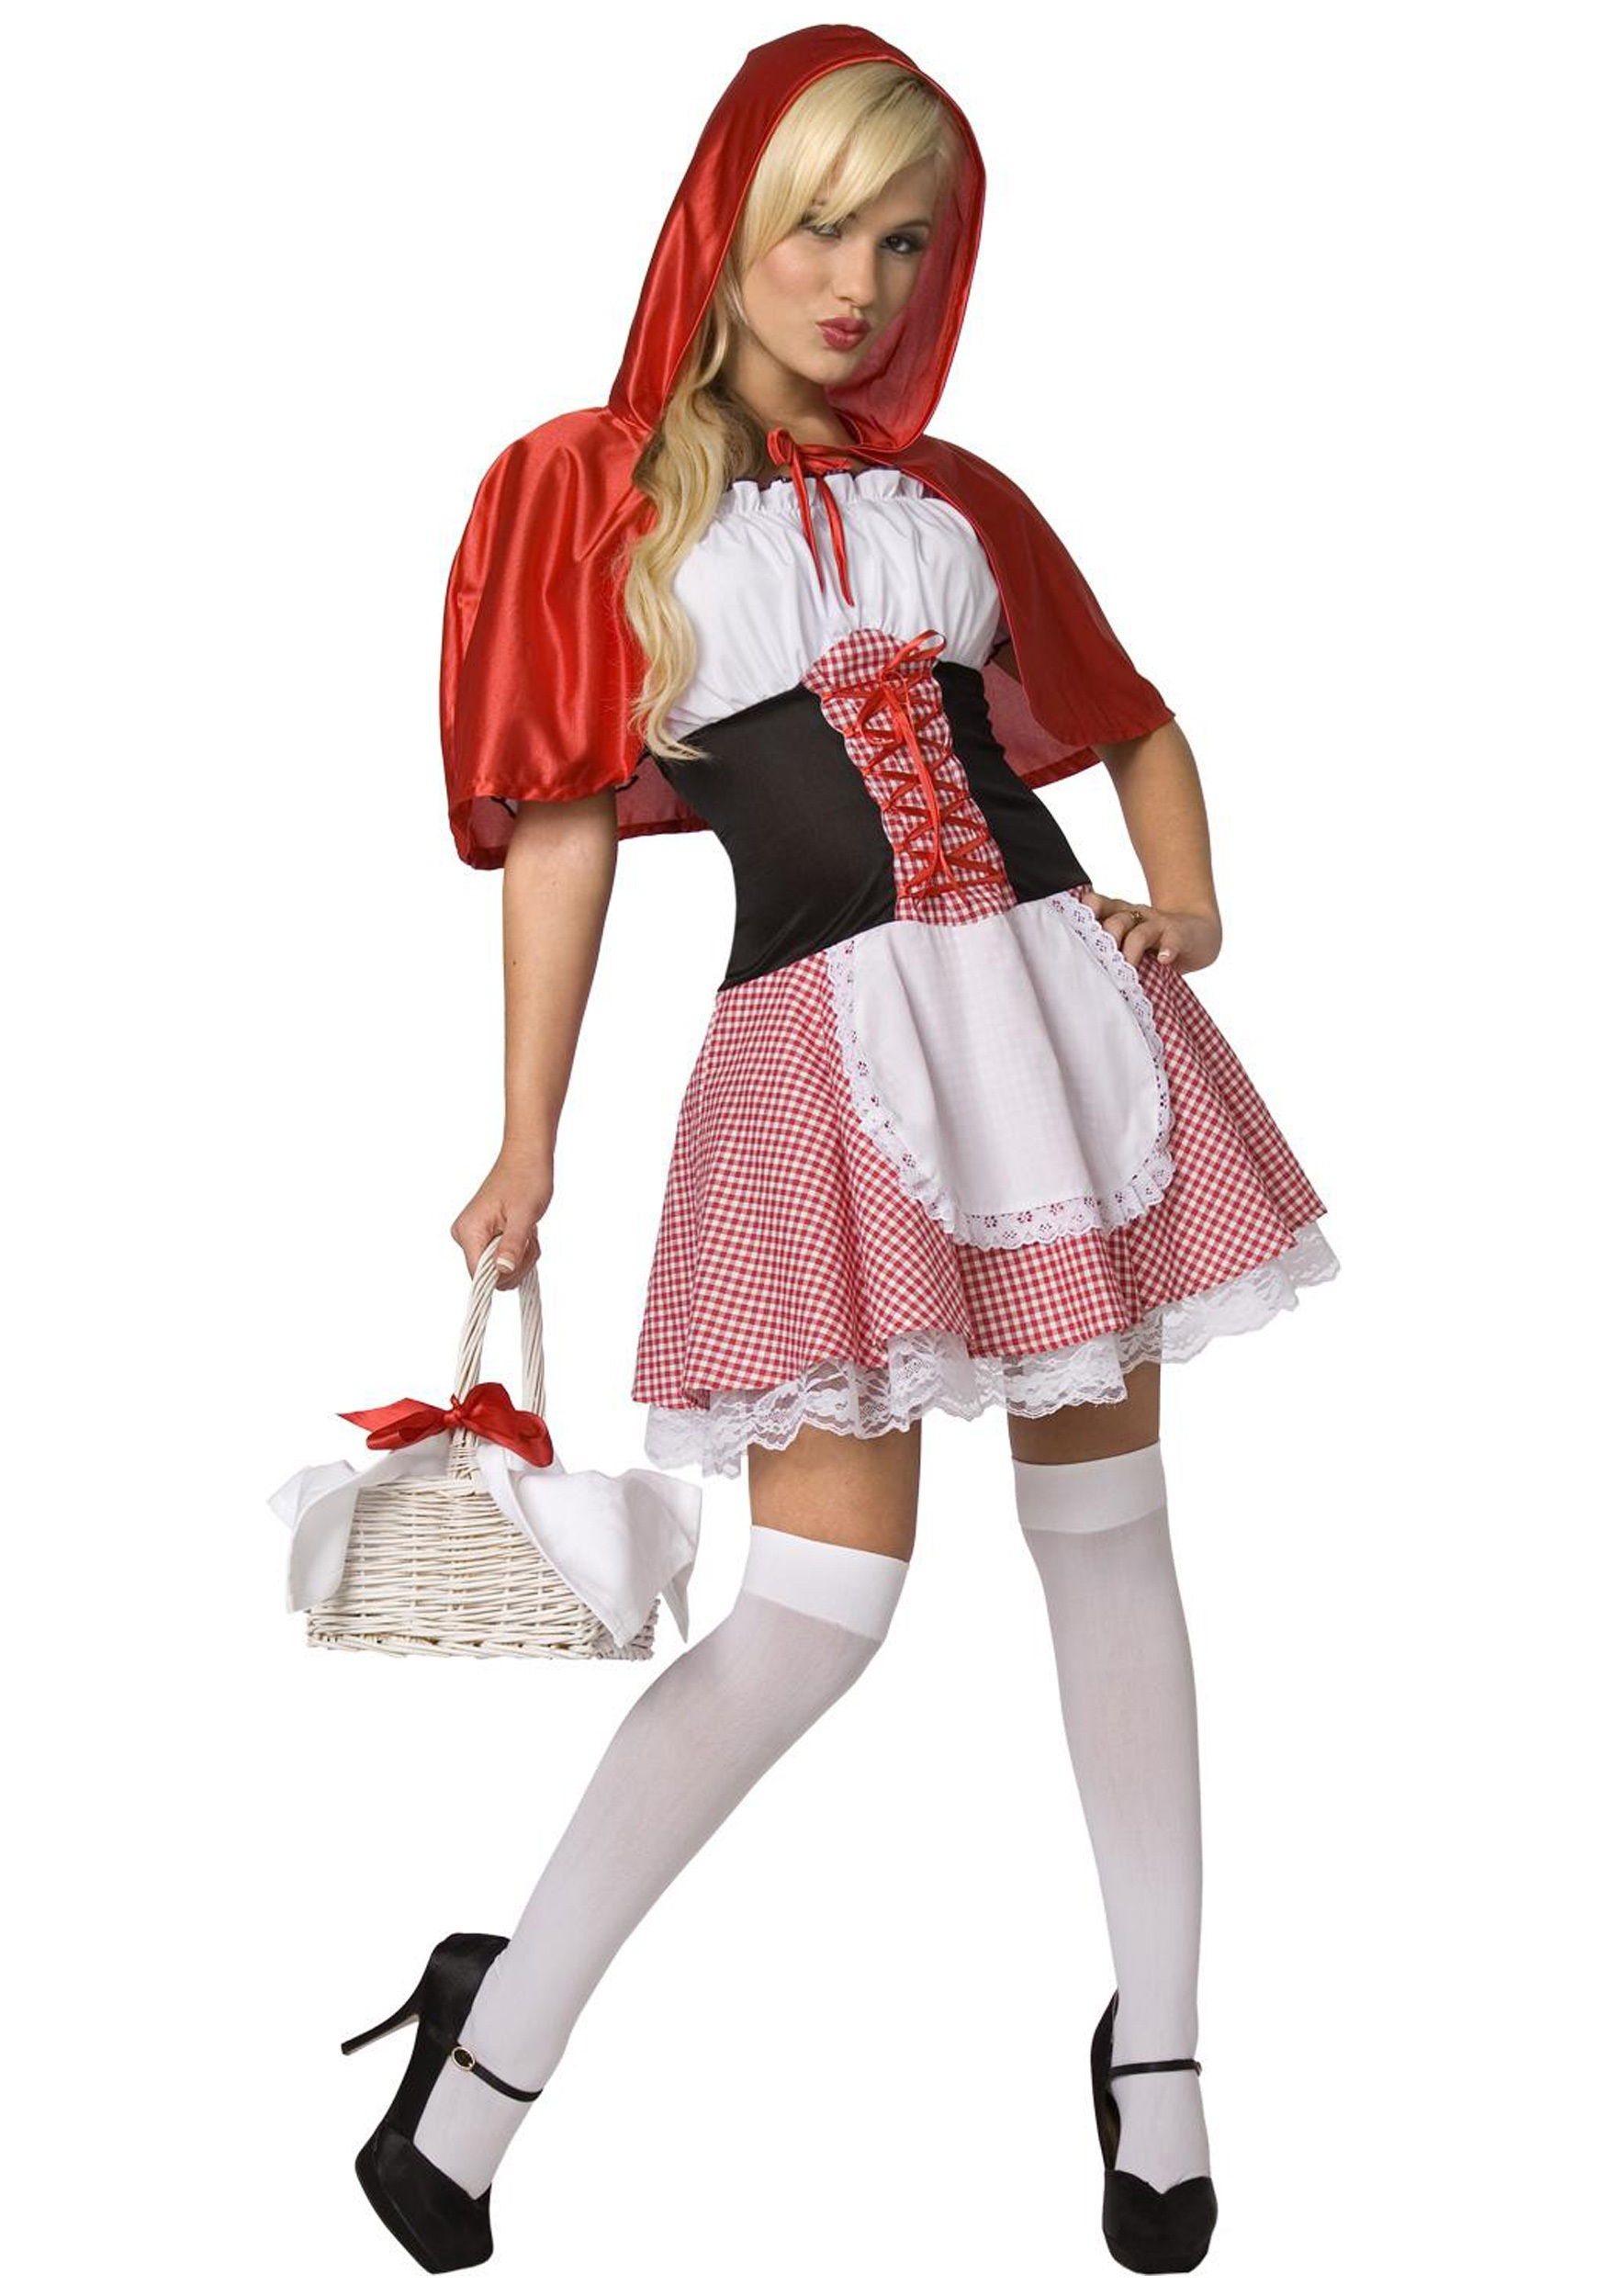 INOpets.com Anything for Pets Parents & Their Pets Sexy Red Riding Hood Fancy Dress Costume